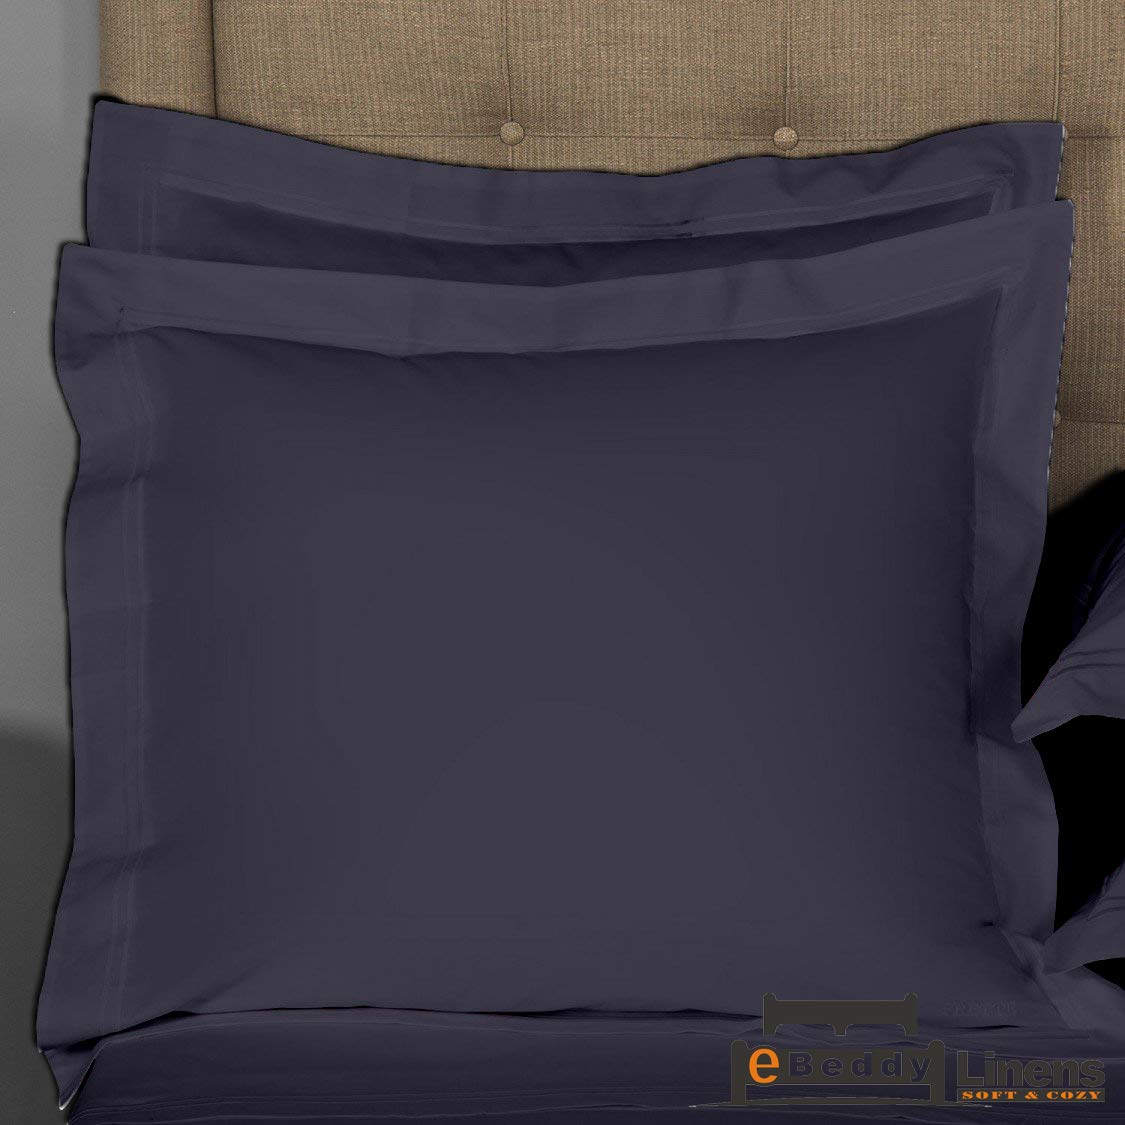 Pillow sham Set of 2 Navy Blue Solid 800 Thread Count Sofa/Square (20x20) Size Envelope Closure Pillow Cover | Long Staple - Sateen Weave Silky Soft Natural Cotton | breathable & Smooth Feel